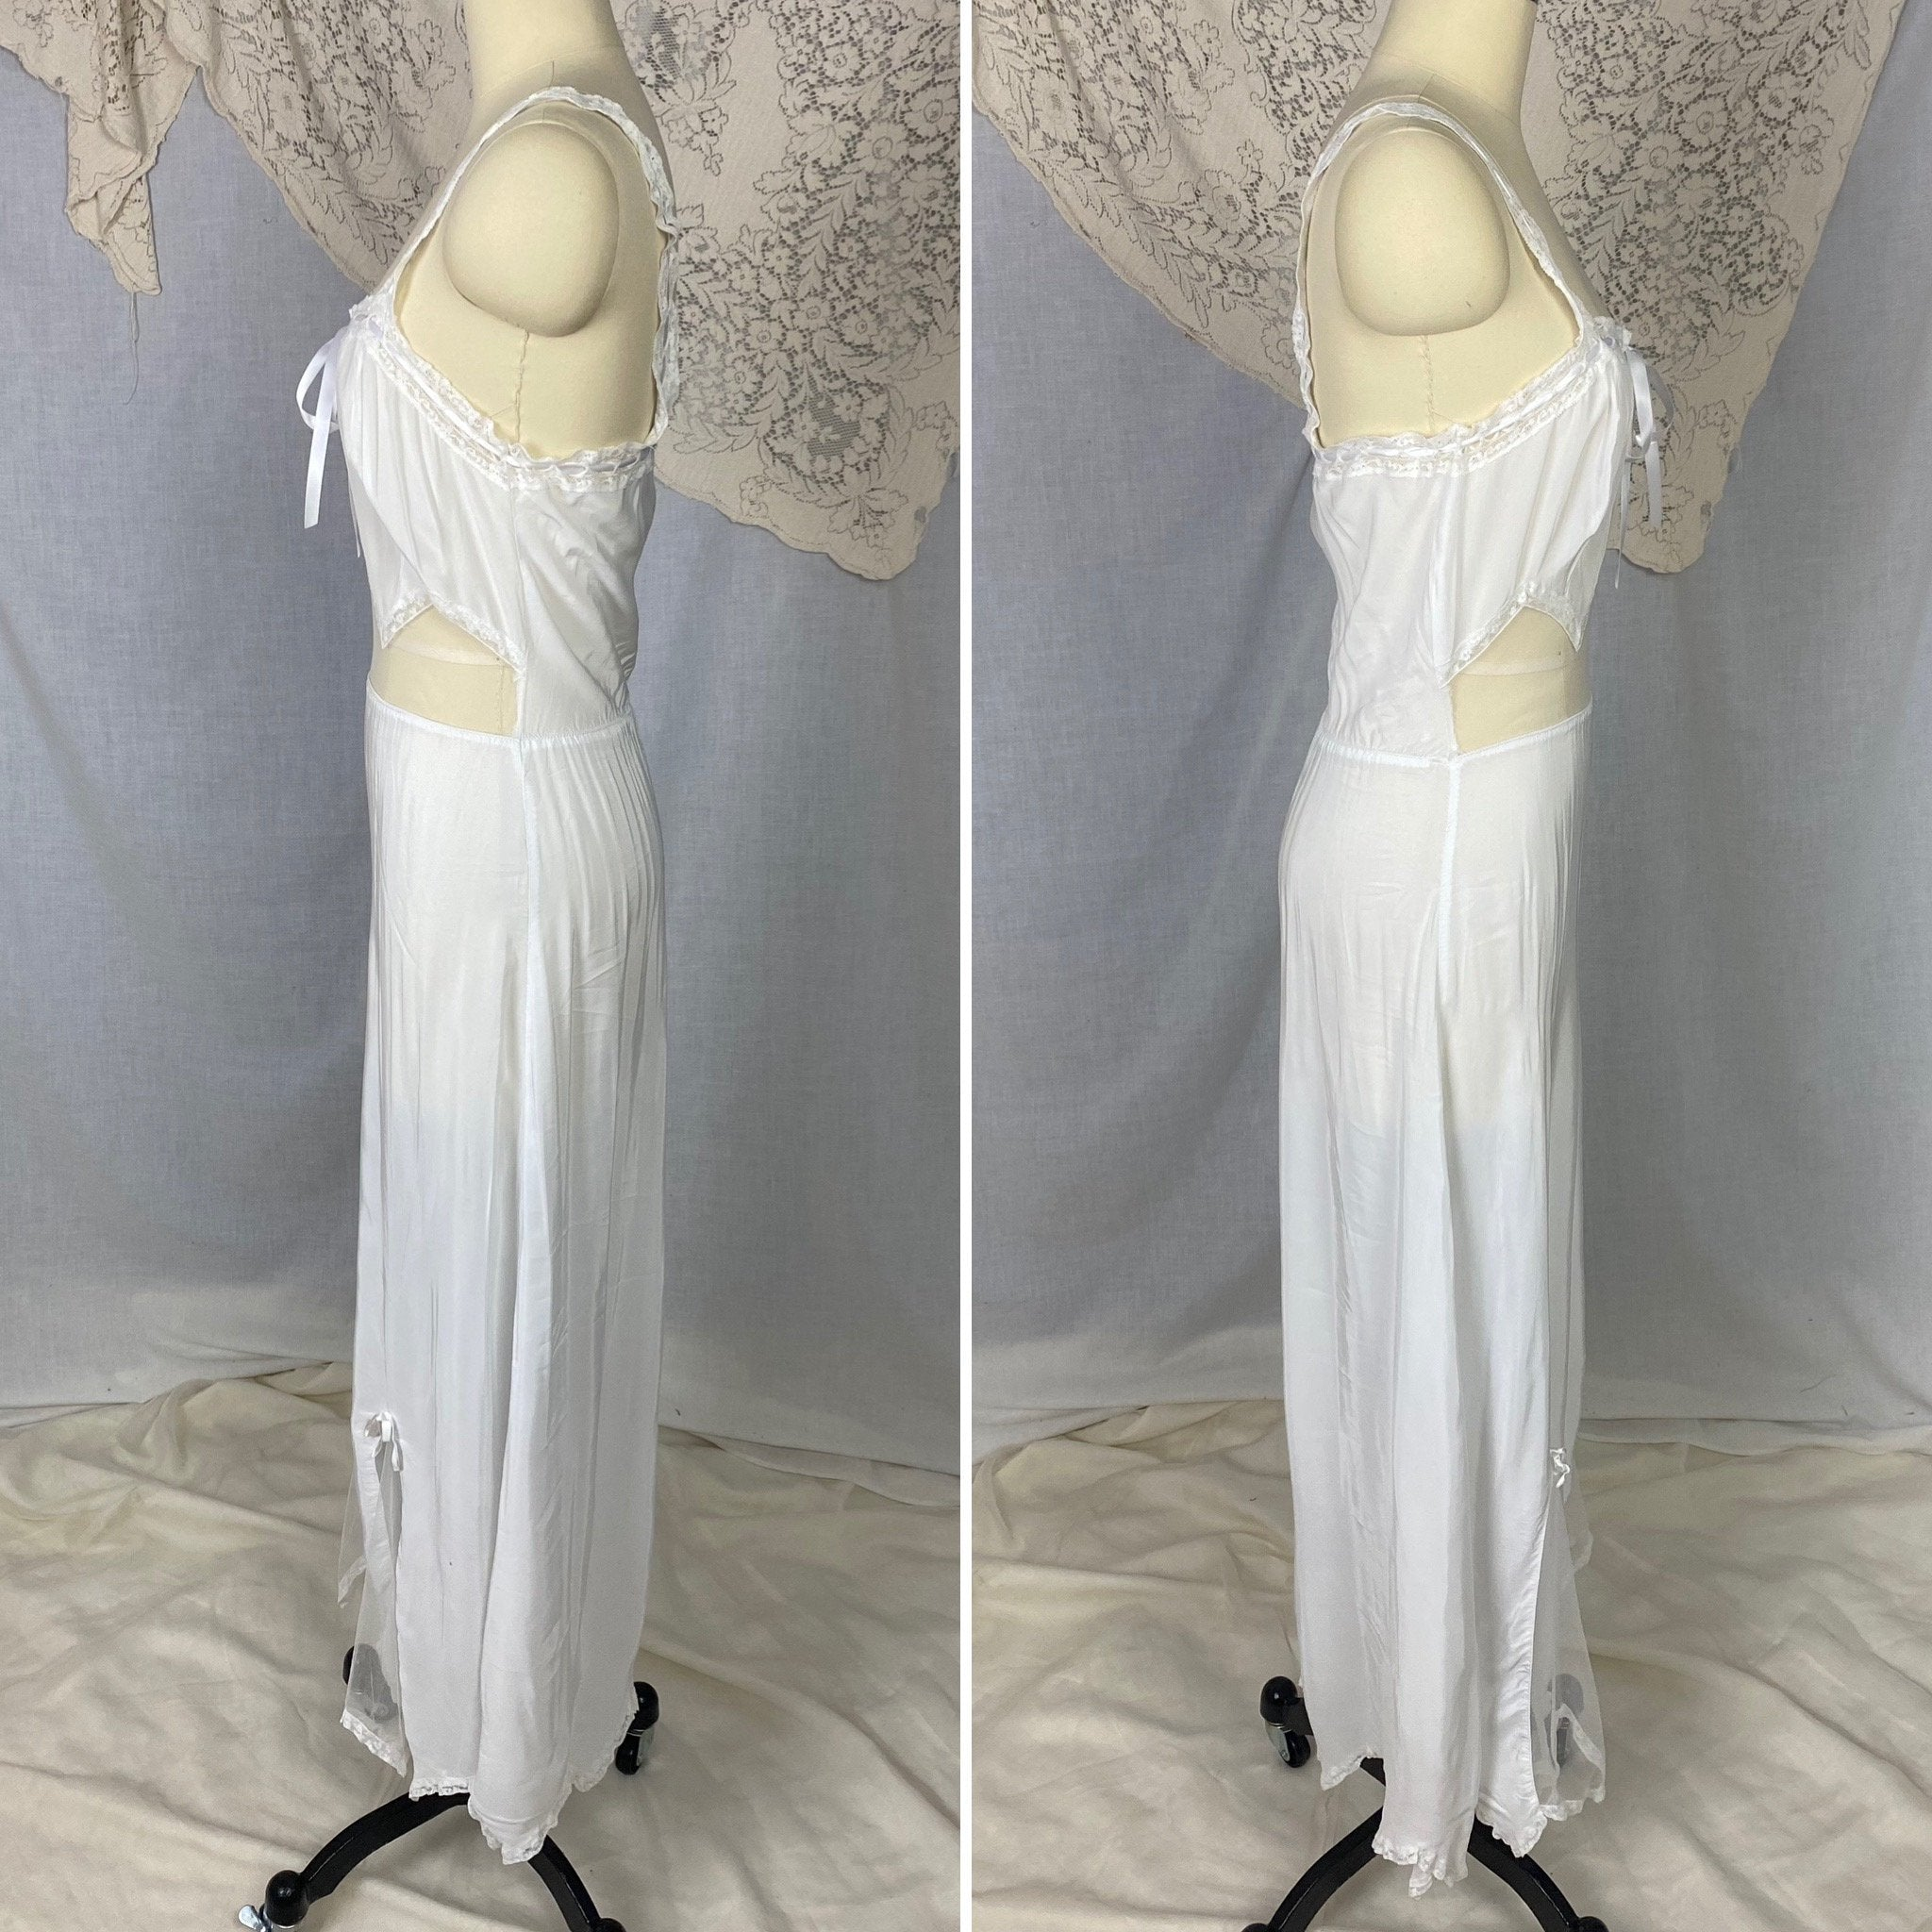 Vintage 1950's Nightgown | Semi Sheer White Rayon Crepe with Nylon Mesh Inserts & Scalloped Hem | Size XS, S - Daggers & Dames